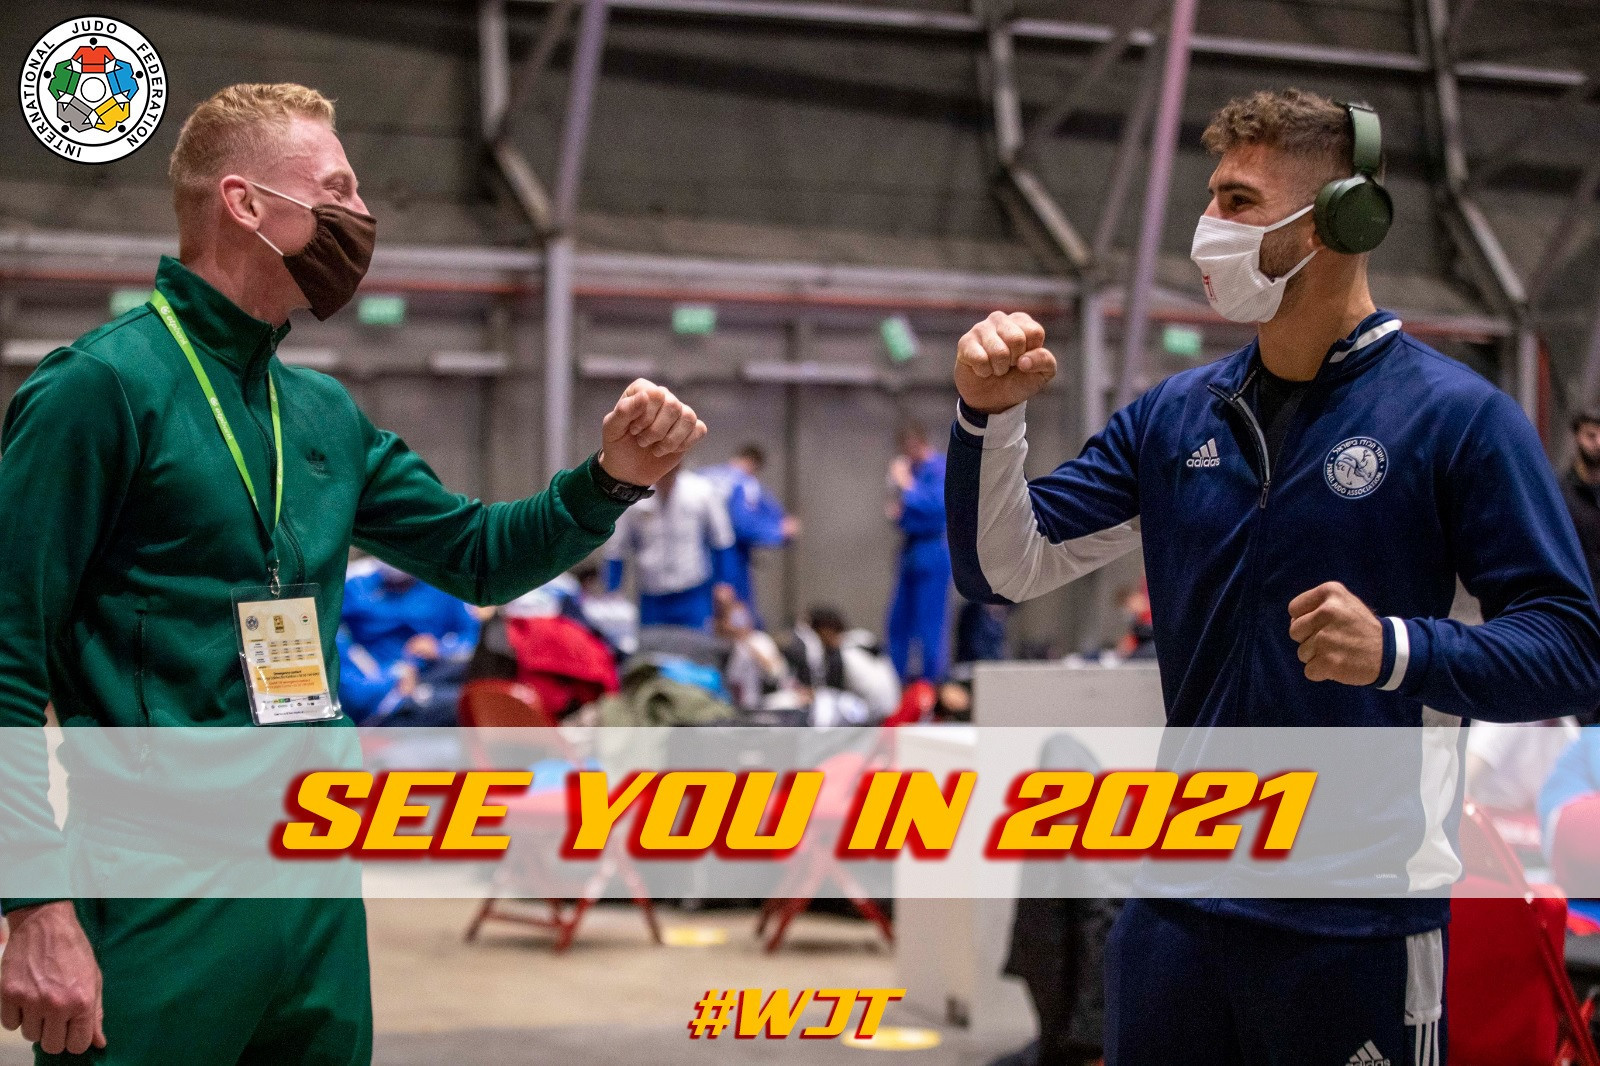 IJF ends World Judo Tour season over COVID-19 situation